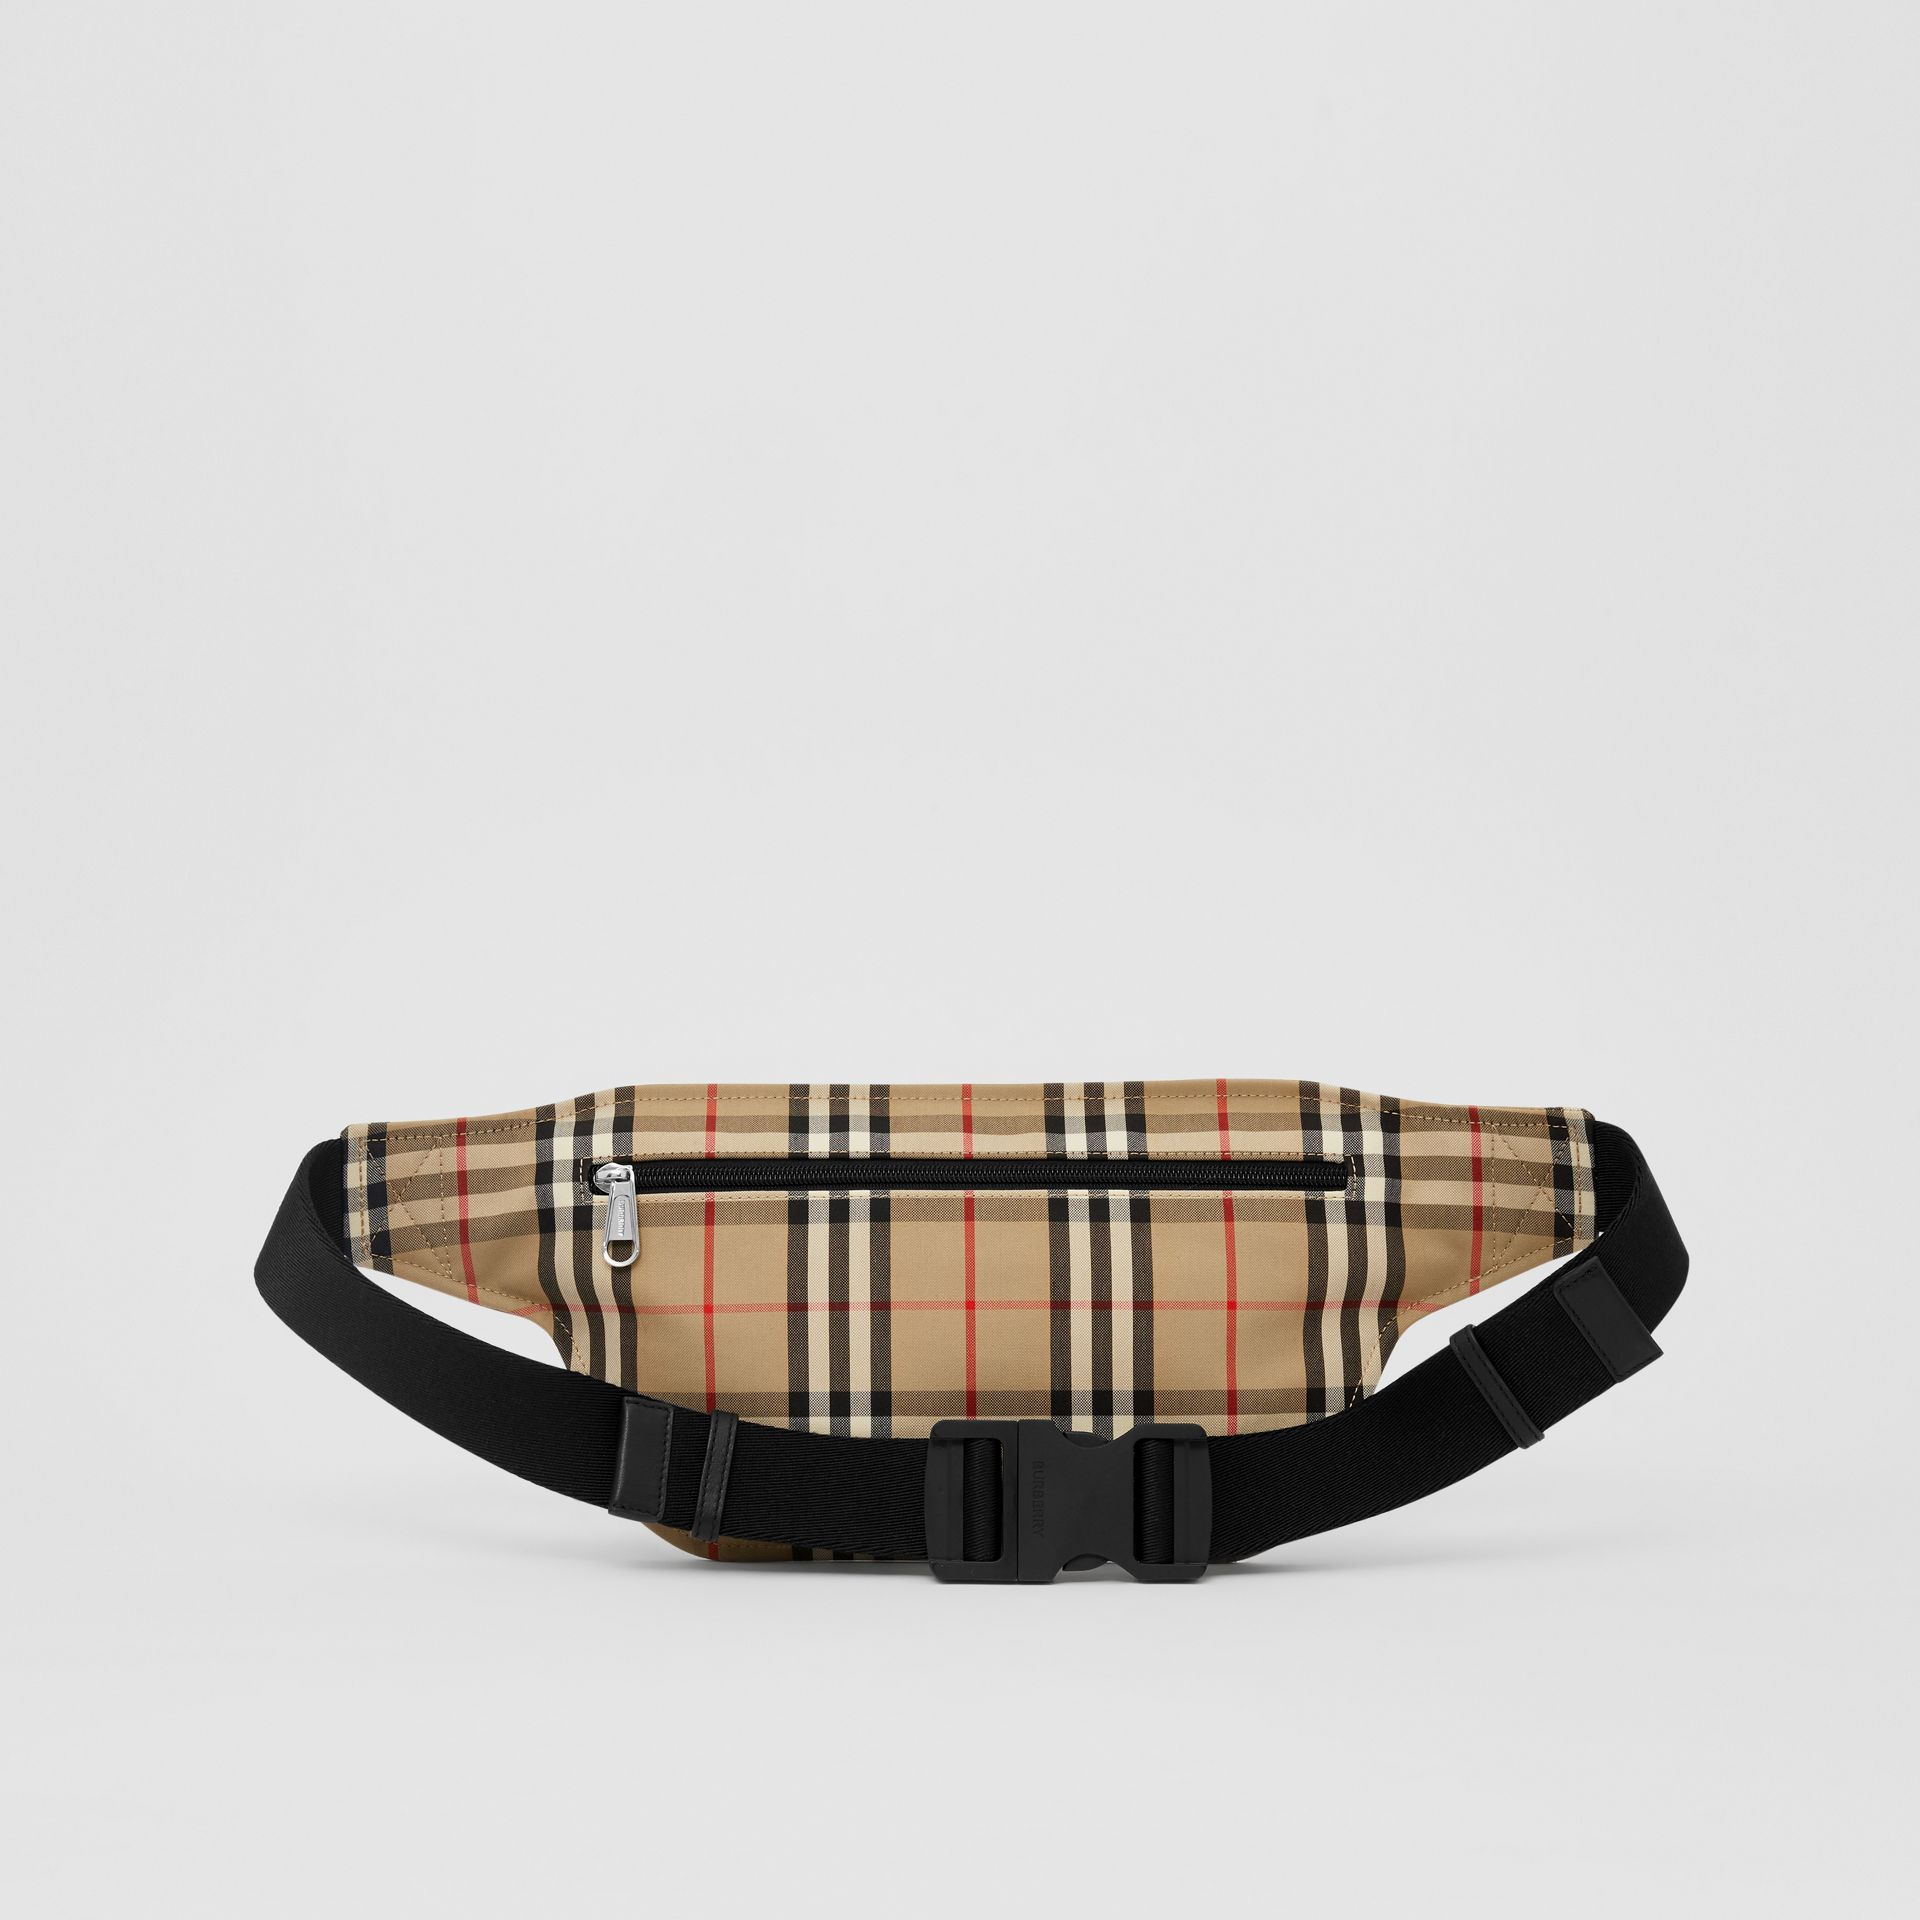 Logo Appliqué Vintage Check Brummell Bum Bag in Archive Beige | Burberry - gallery image 9